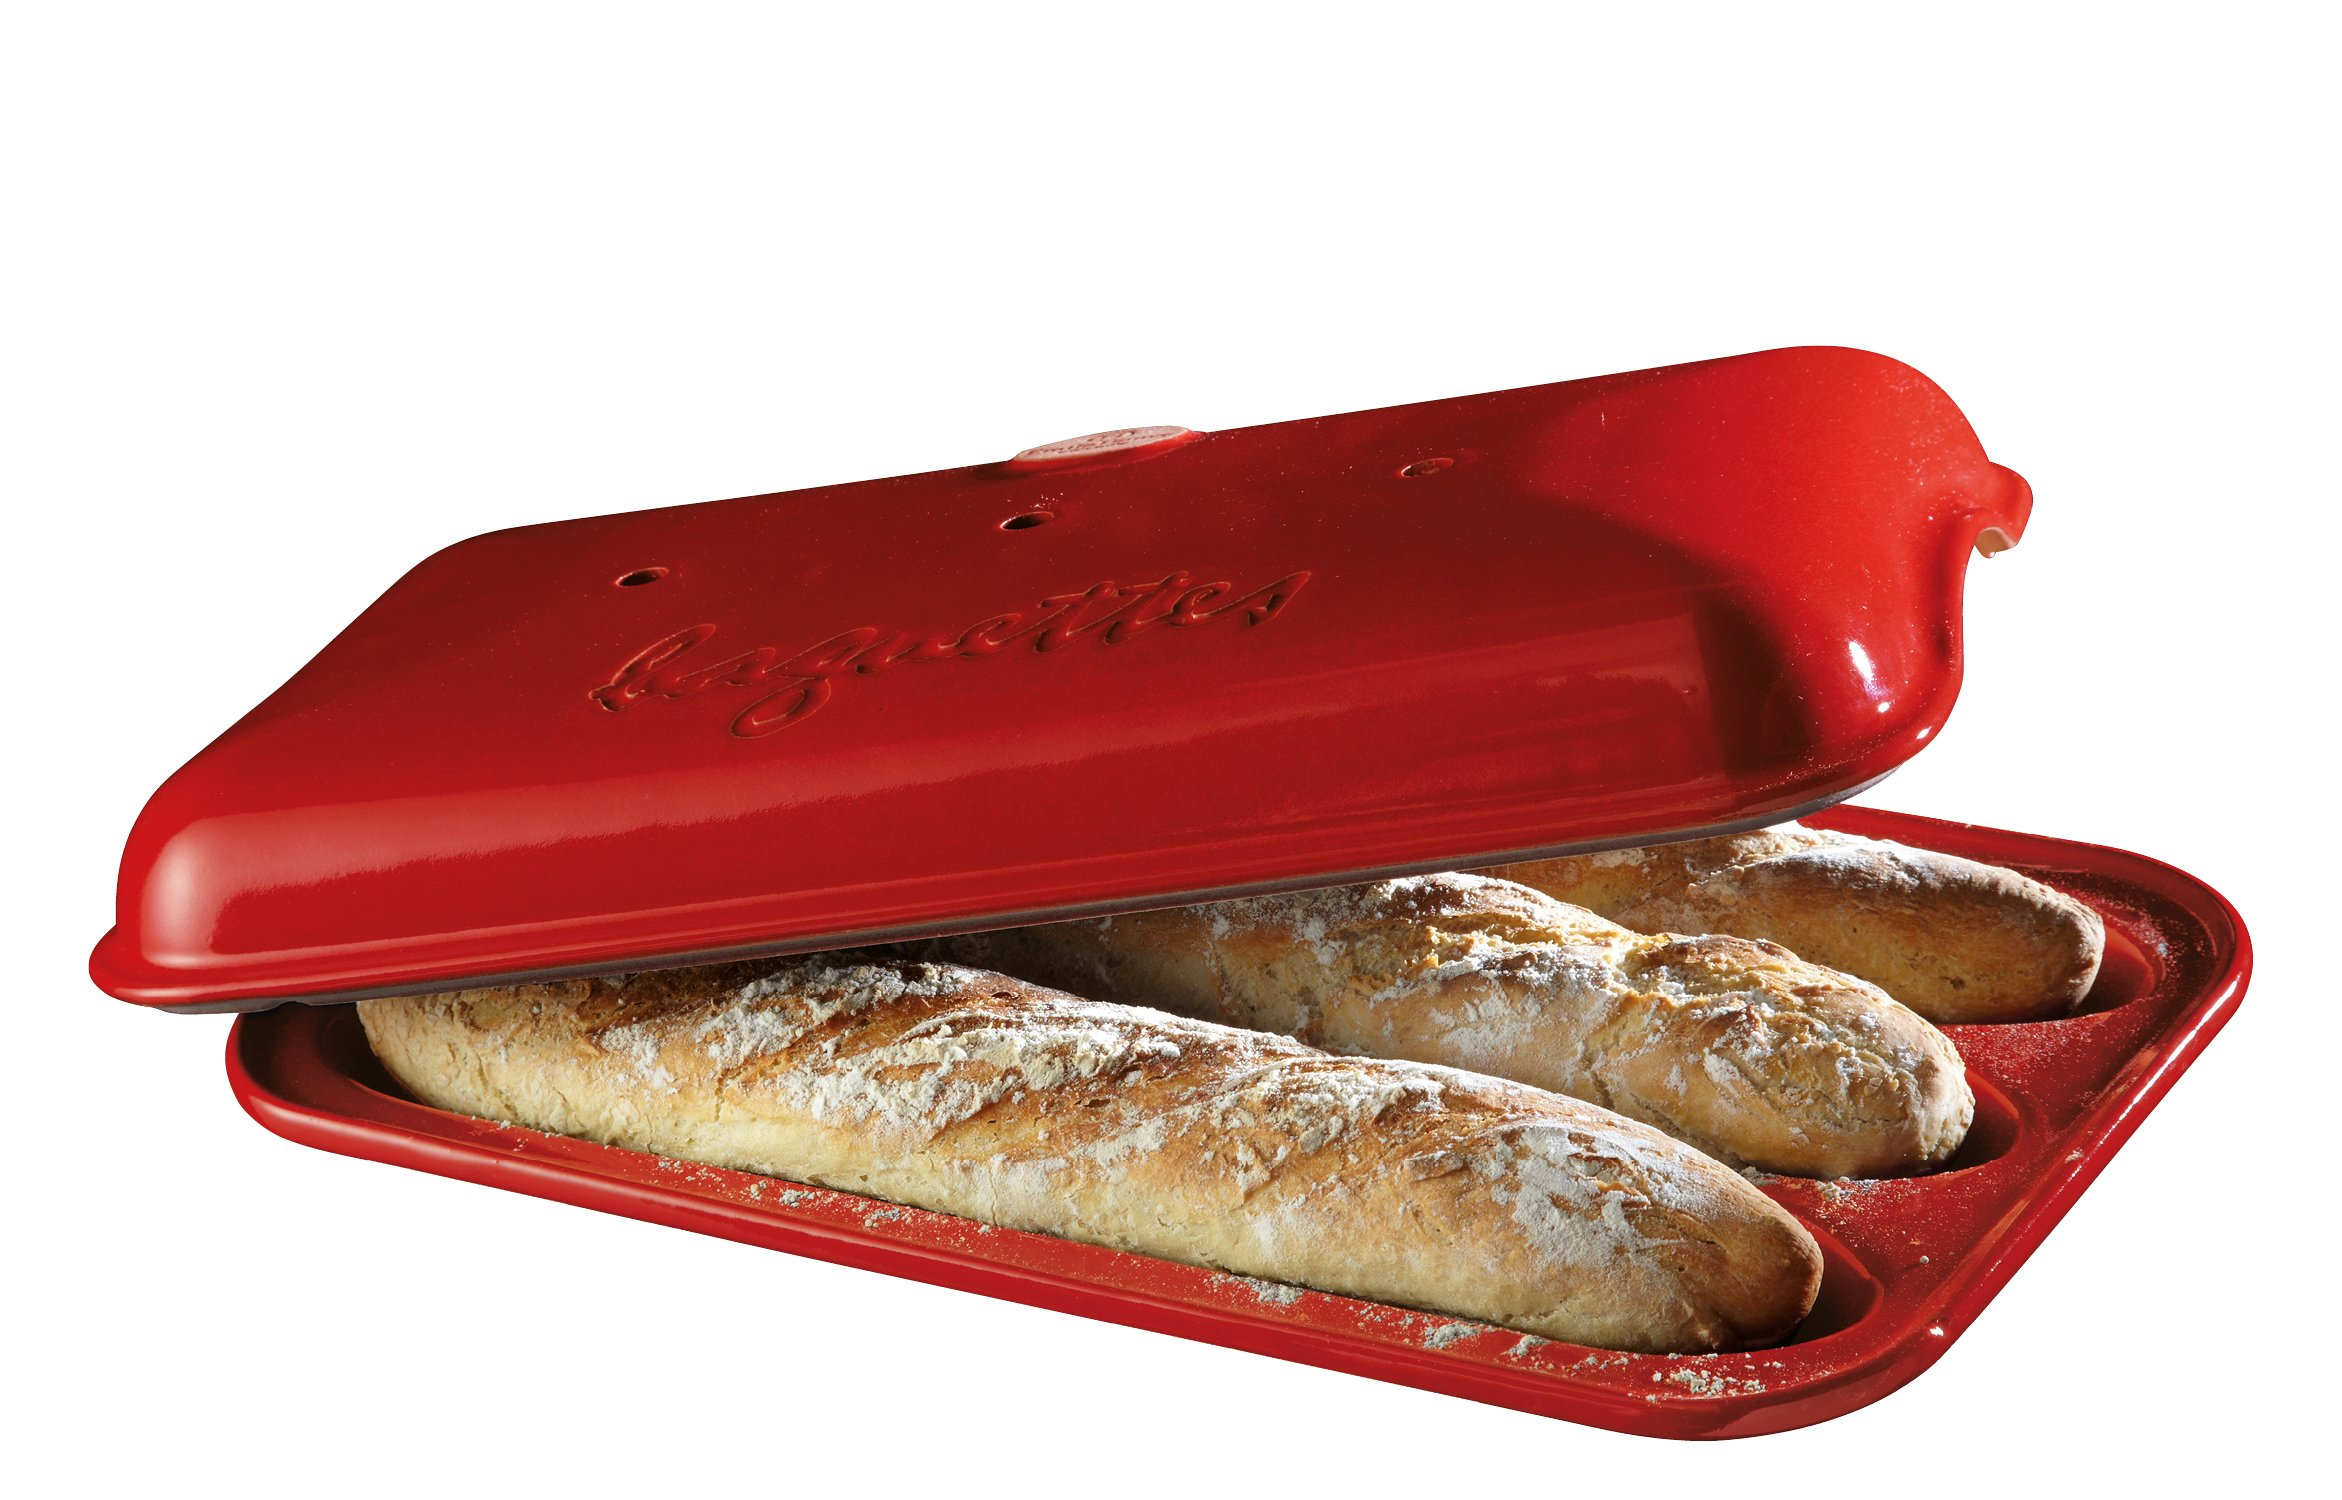 Emile Henry Made In France Flame Baguette Baker, 15.4 x 9.4'', Burgundy by Emile Henry